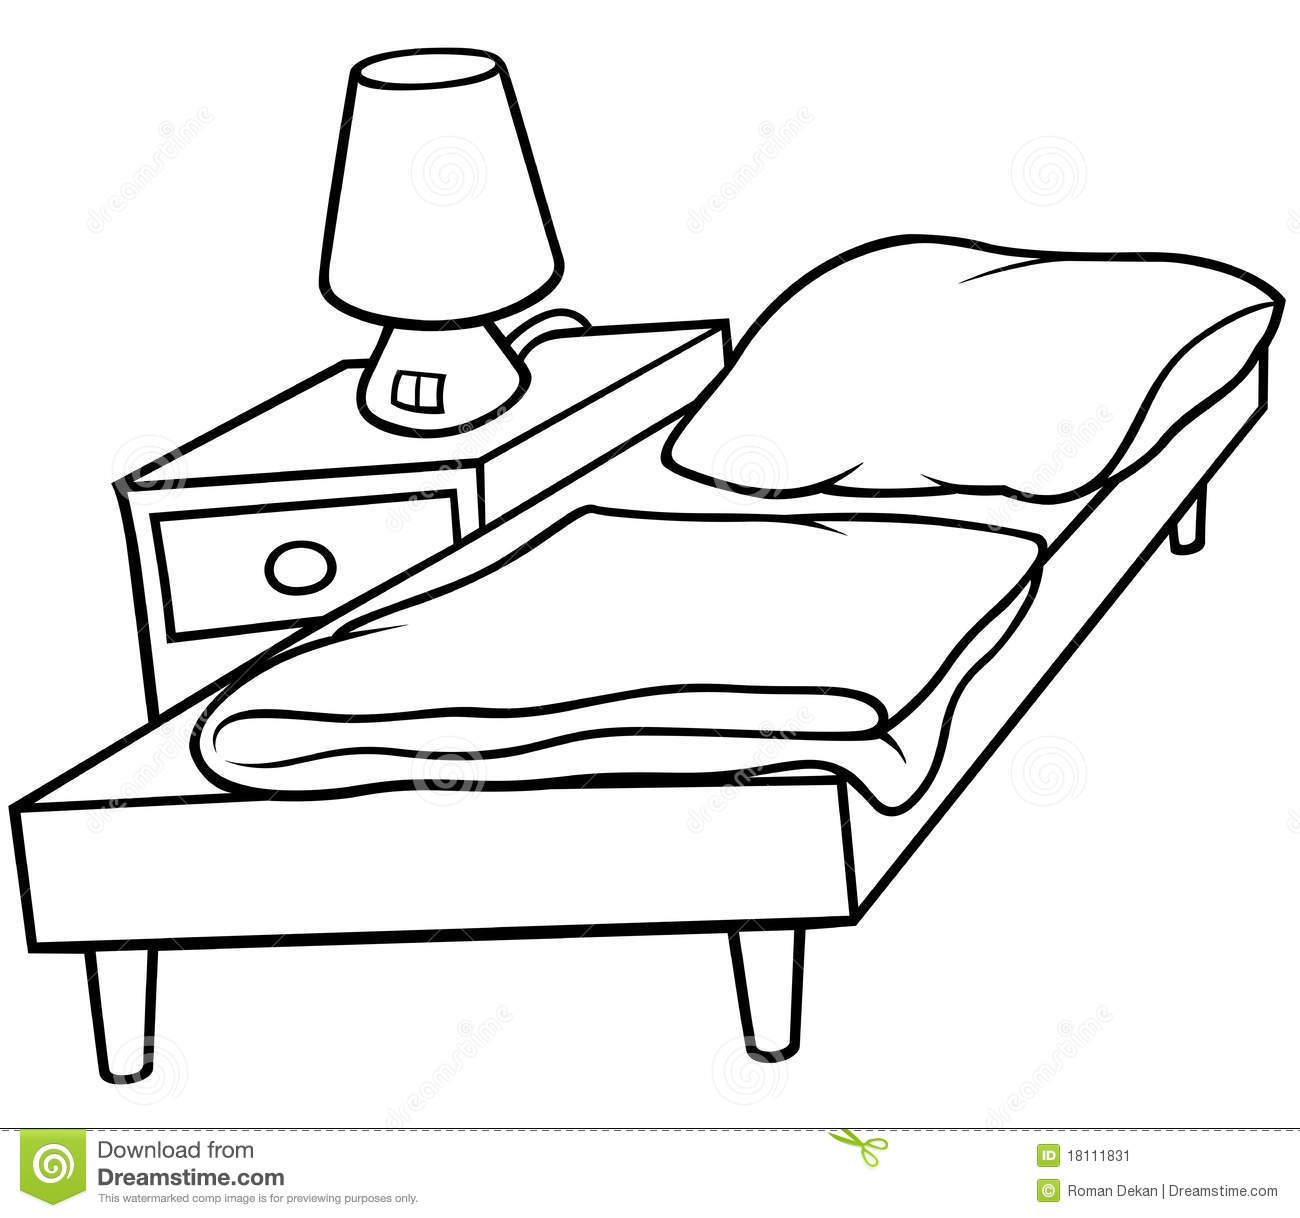 Bed And Bedside Stock Vector Illustration Of Interior